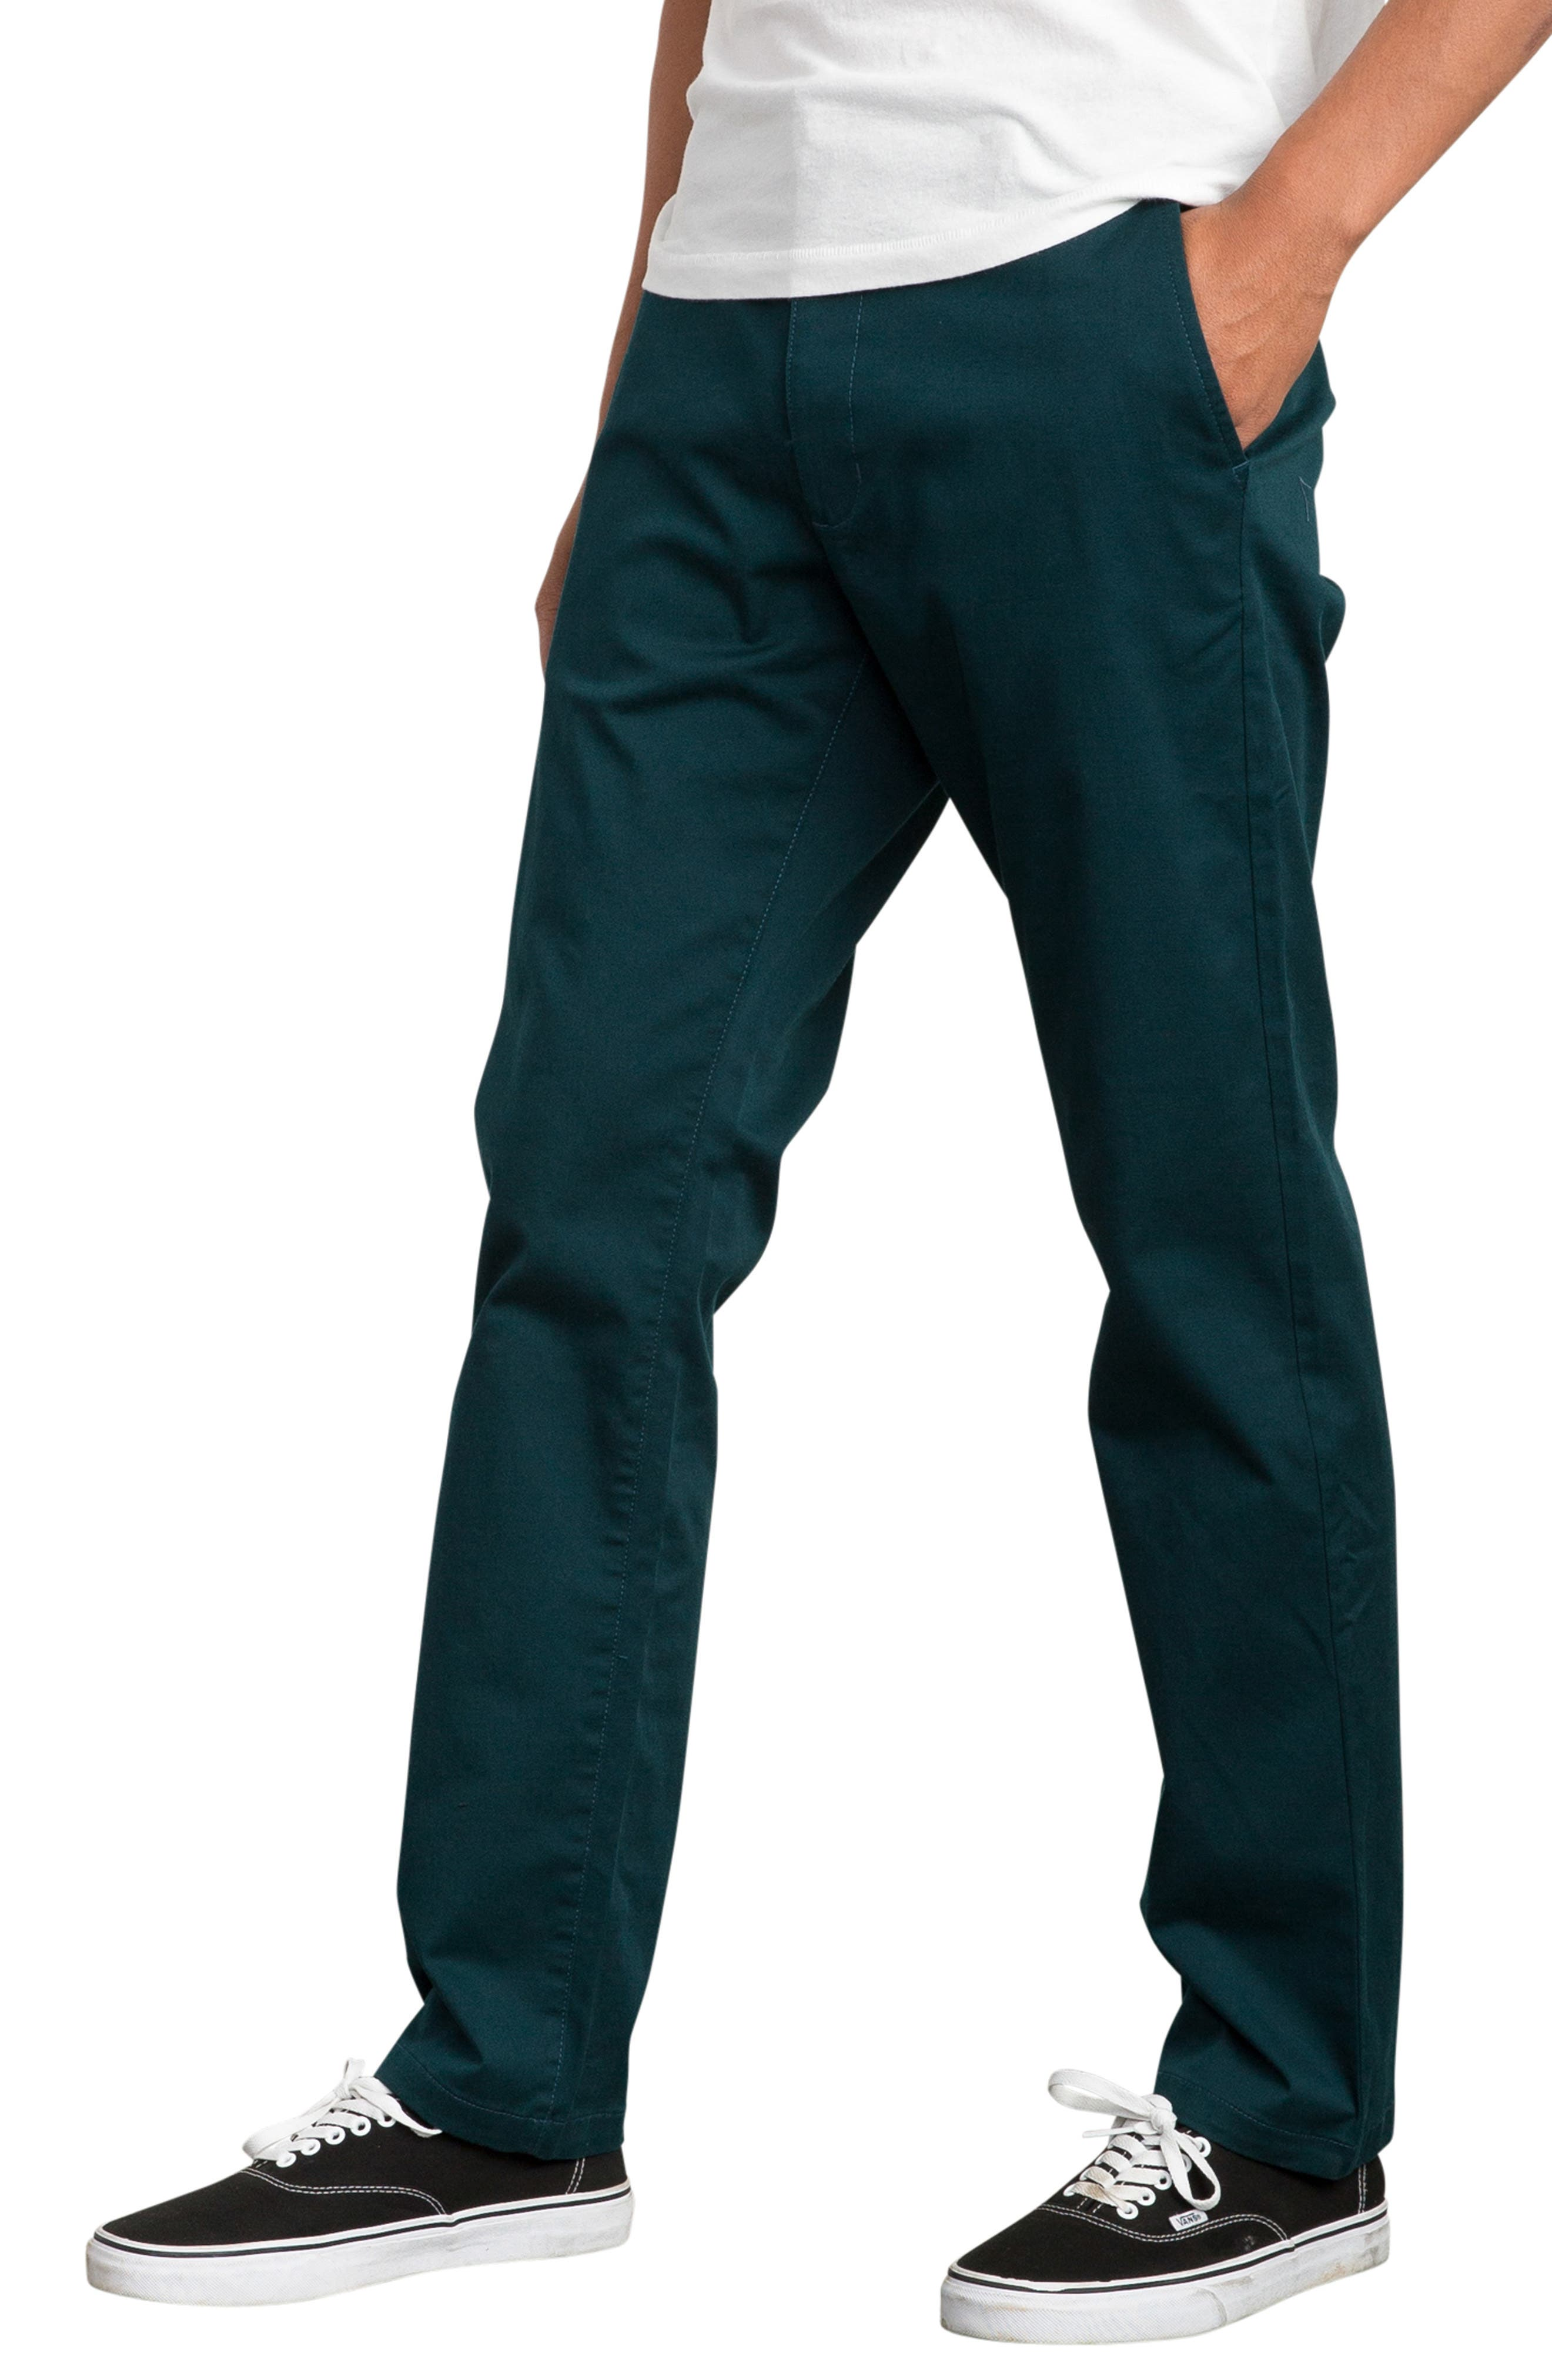 'The Week-End' Slim Straight Leg Stretch Twill Chinos,                             Alternate thumbnail 3, color,                             DARK FOREST